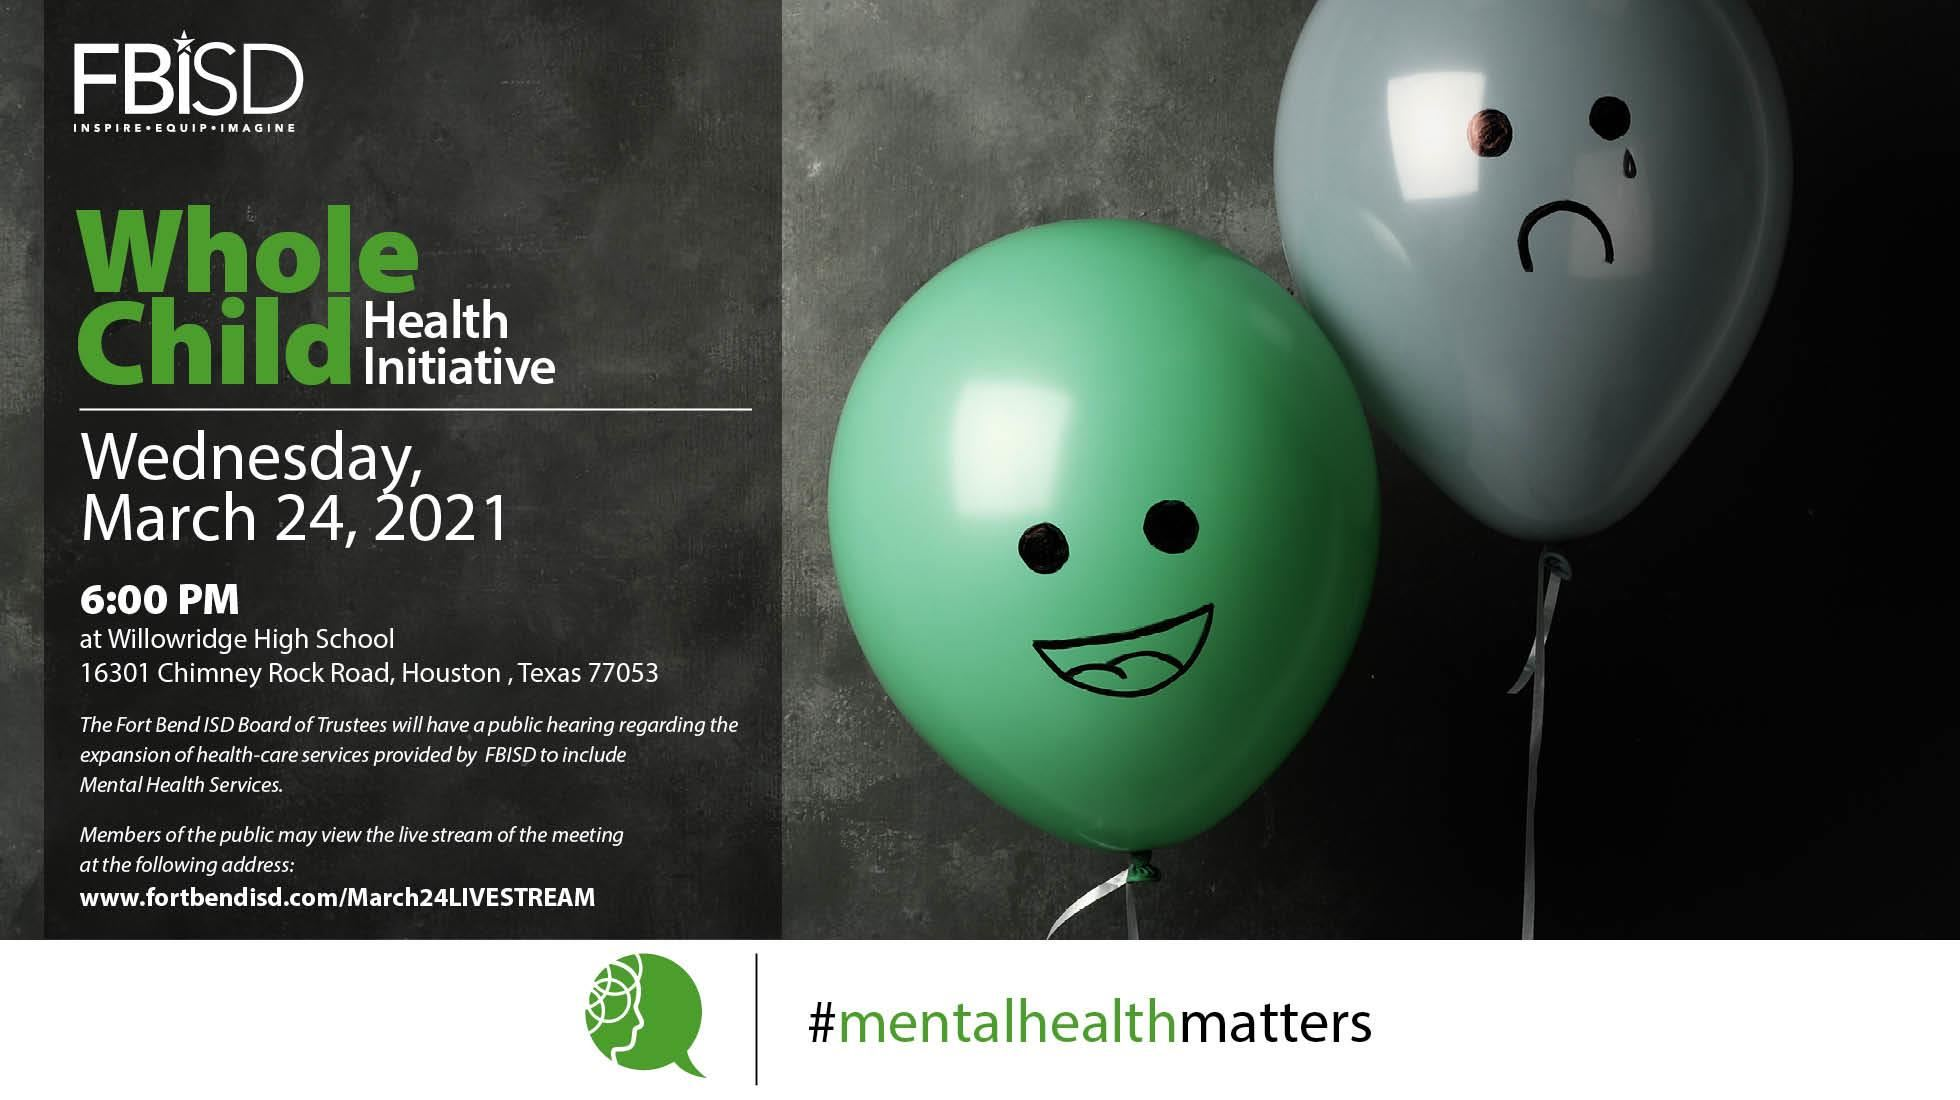 Mental Health Services Public Hearing